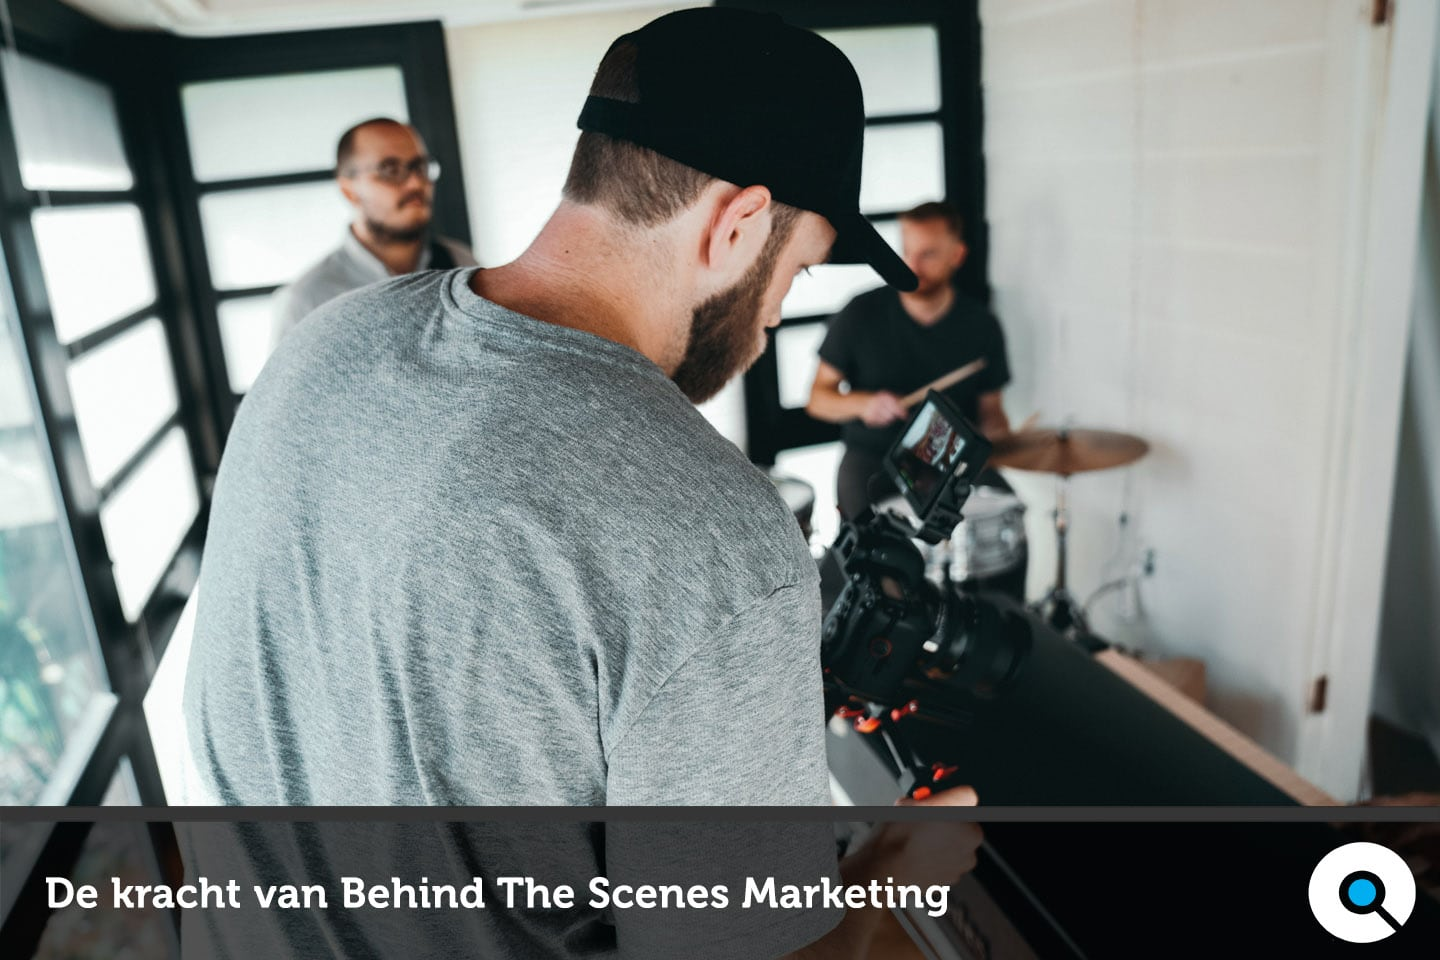 De kracht van behind the scenes marketing - Lincelot - FI